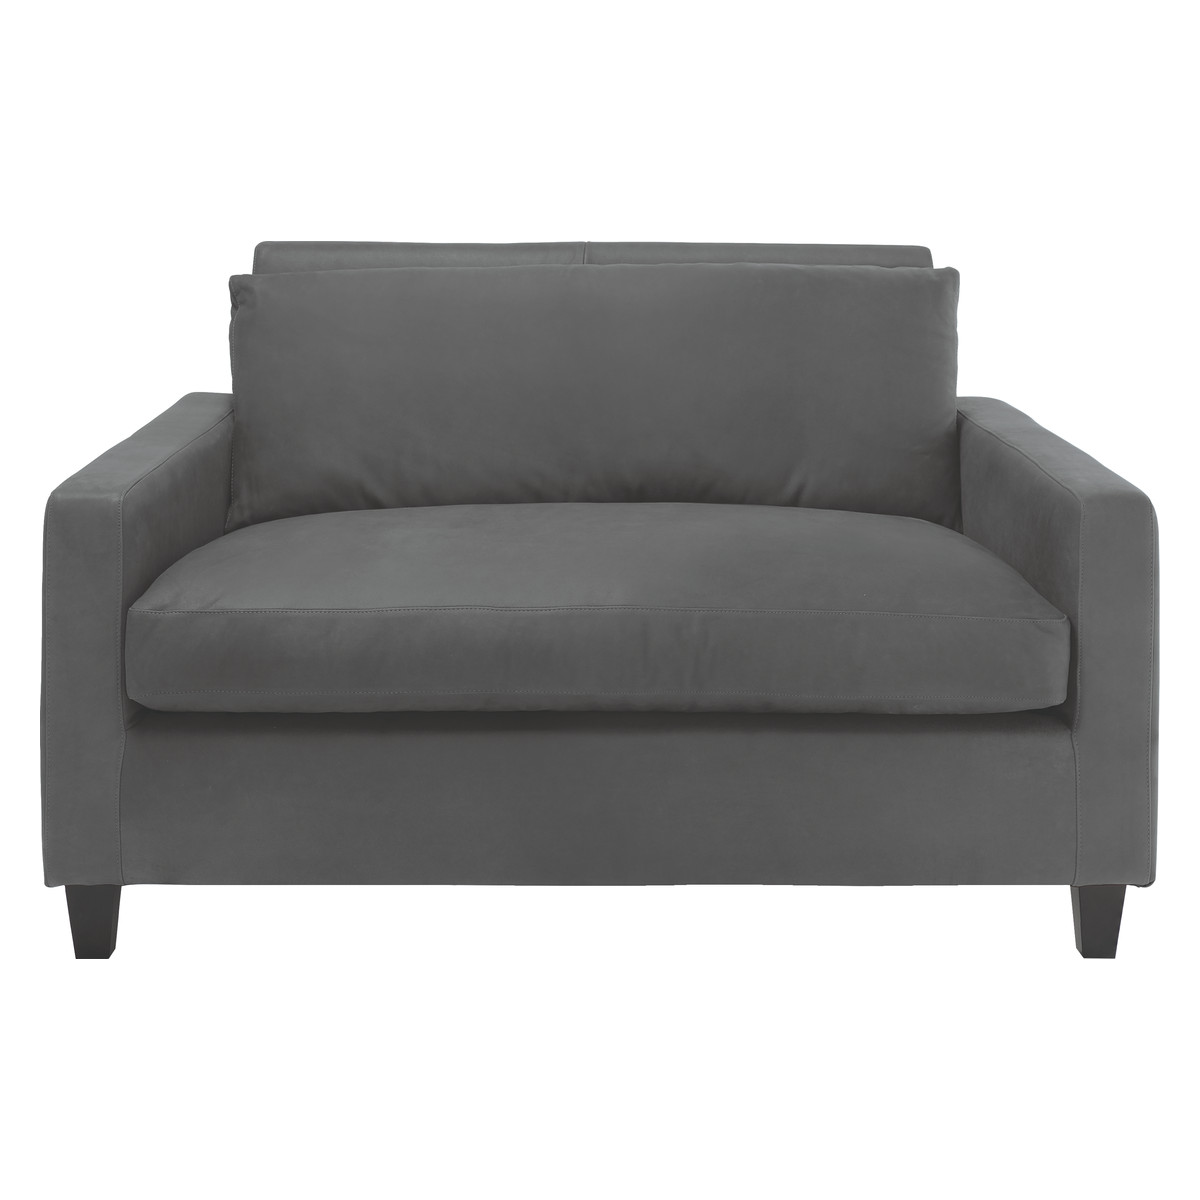 habitat chester sofa leather how to dispose your grey luxury compact dark